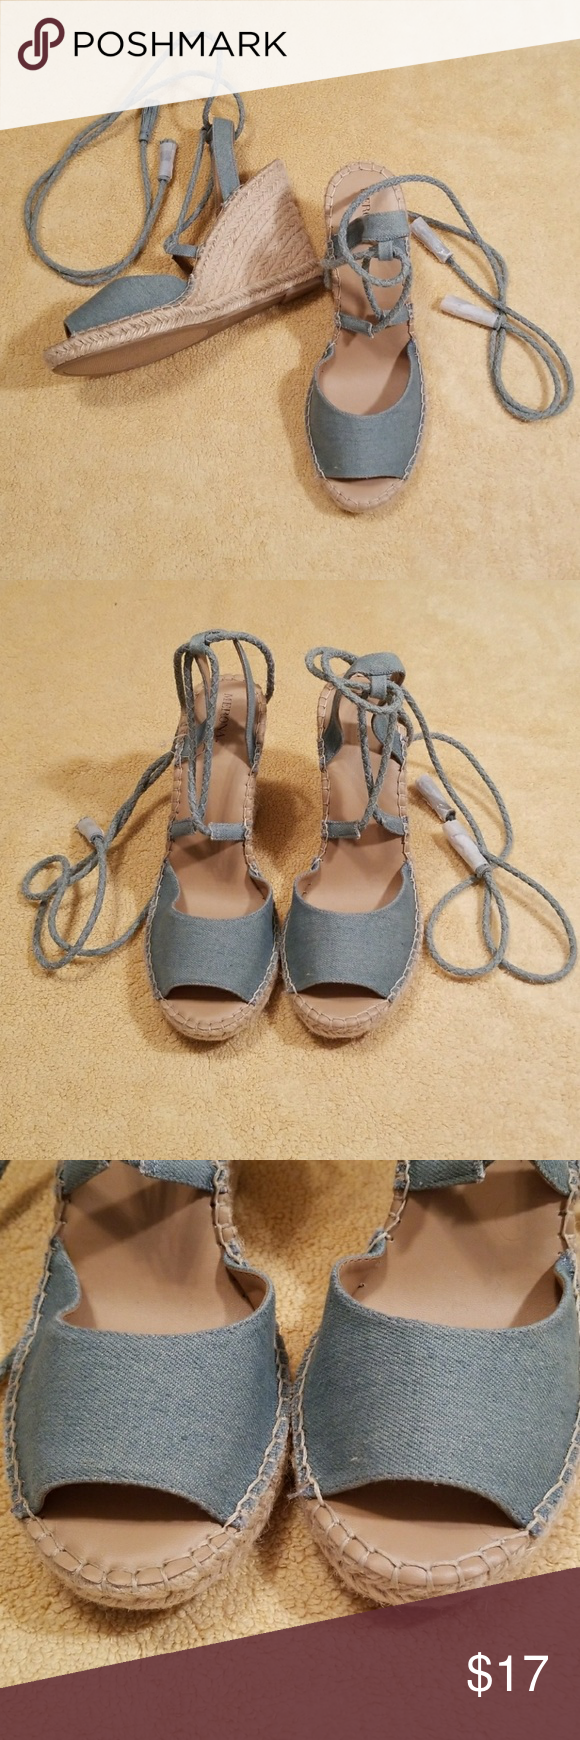 3a514991ea26 Women s Merona Maren Lace Up Sandal in Size 11 Denim blue Maren lace up  wedge espadrille sandals from Merona in a size 11. Braided ankle straps  with tassel ...